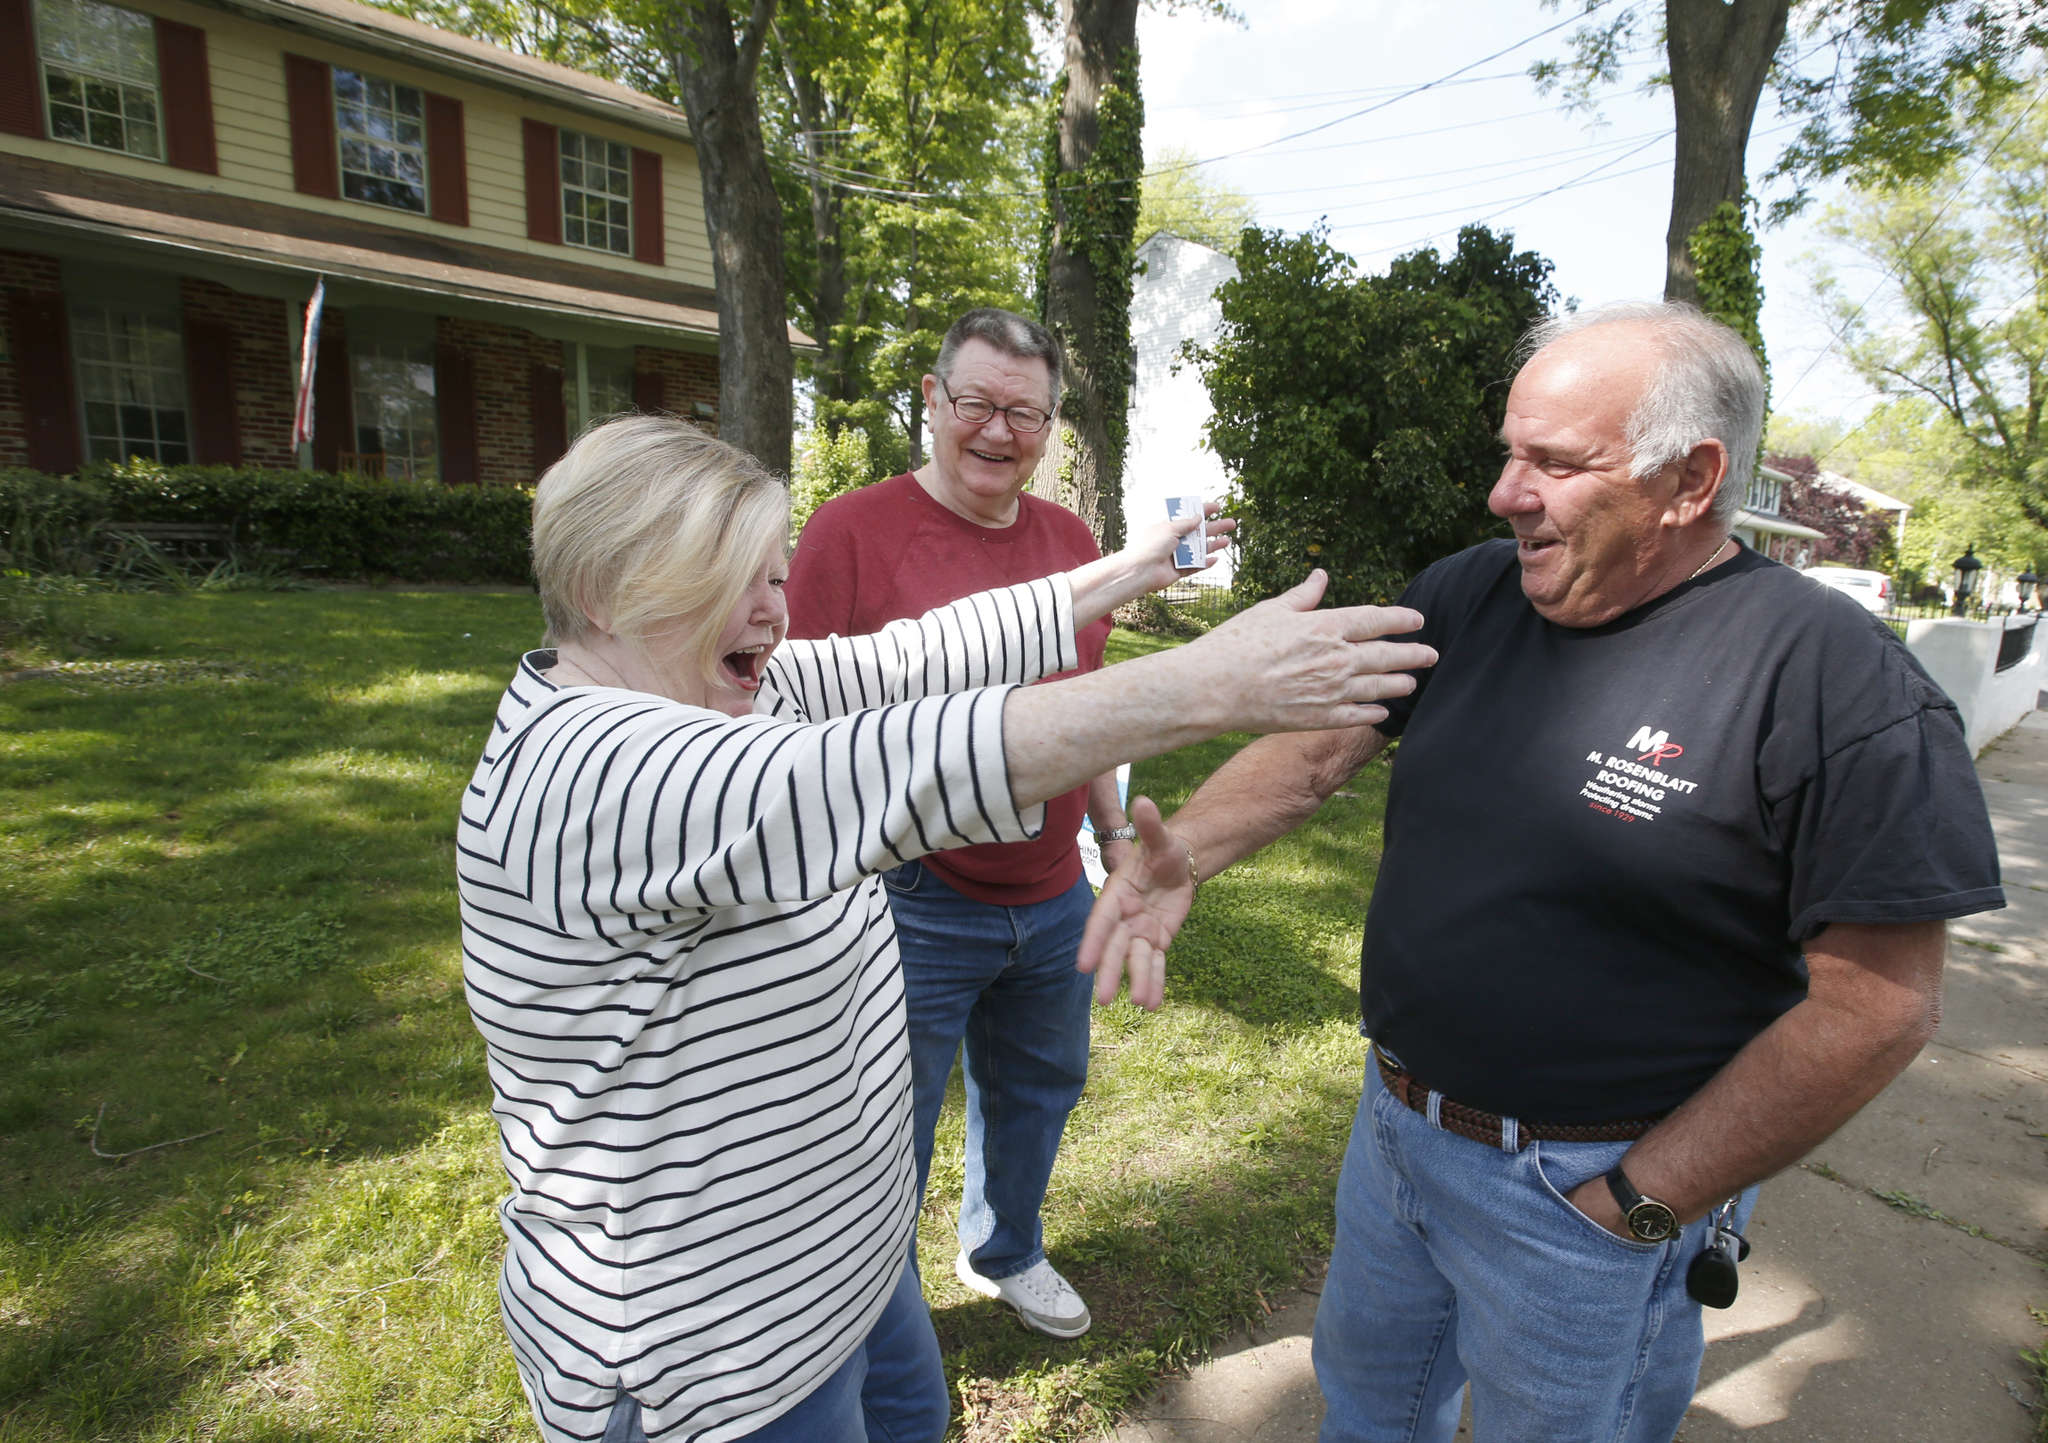 Stephen Meller, third-generation owner of M. Rosenblatt Roofing & Siding, reaches to shake the hand of Pat Porter. She, on the other hand, wants to give him a hug. His firm will donate the labor, another source will finance the materials.